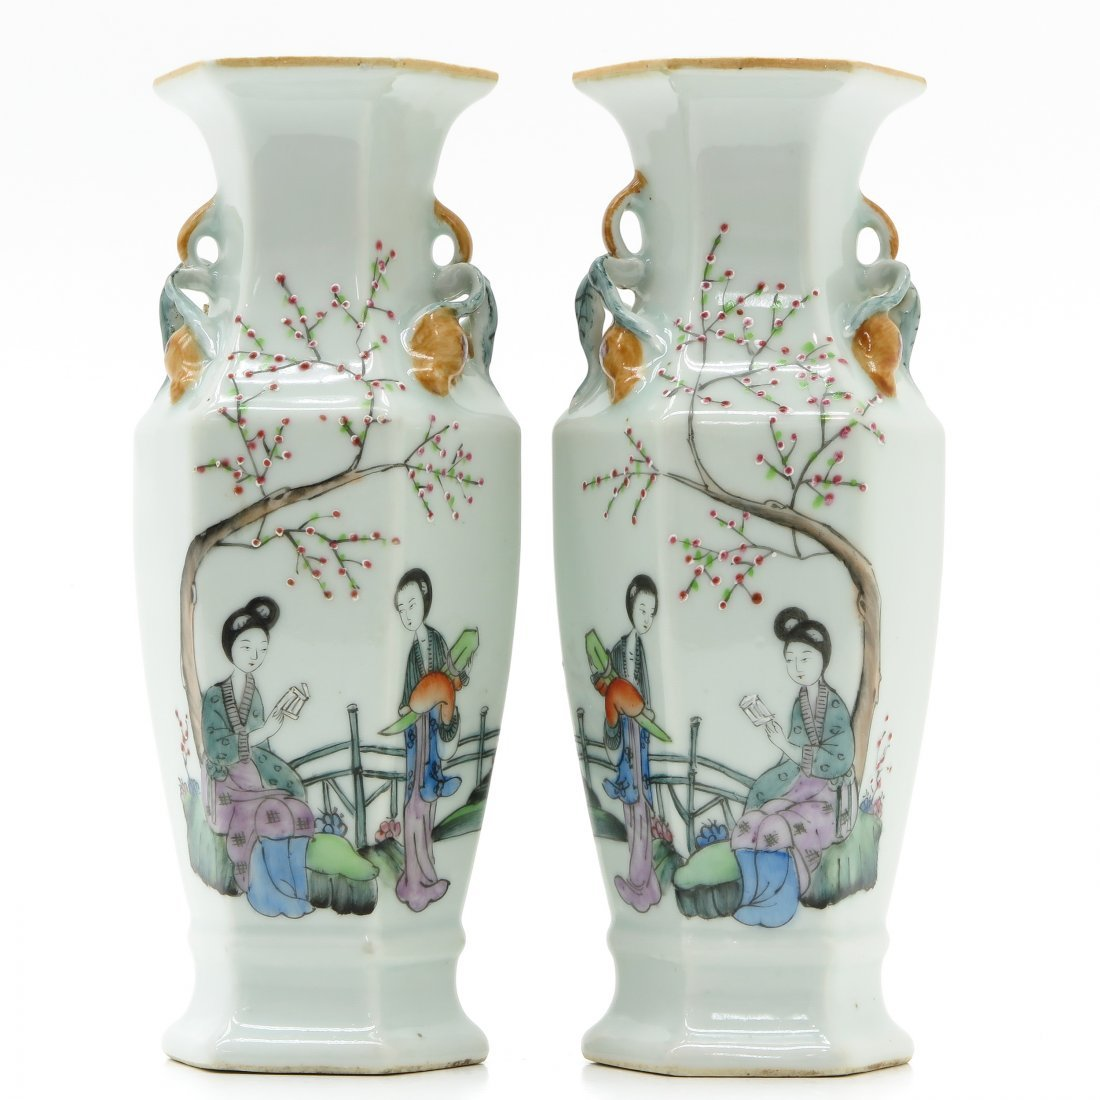 Pair of China Porcelain Vases